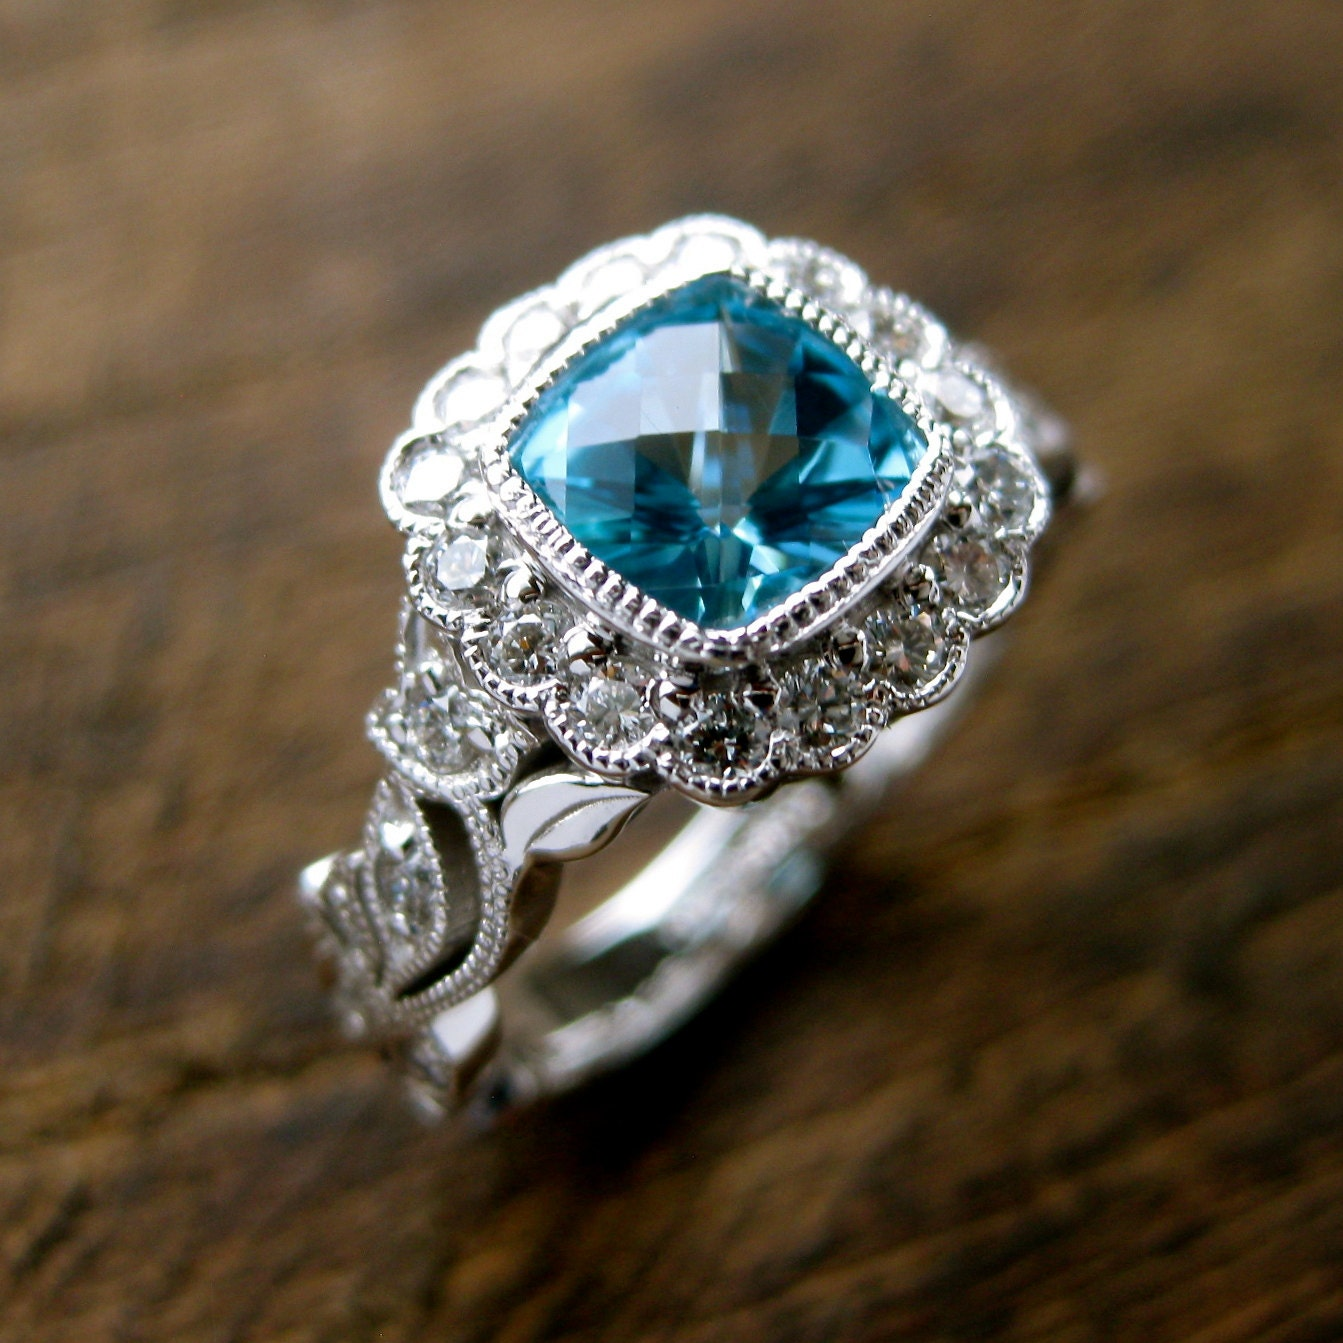 Teal Blue Paraiba Topaz Engagement Ring in 14K White Gold with